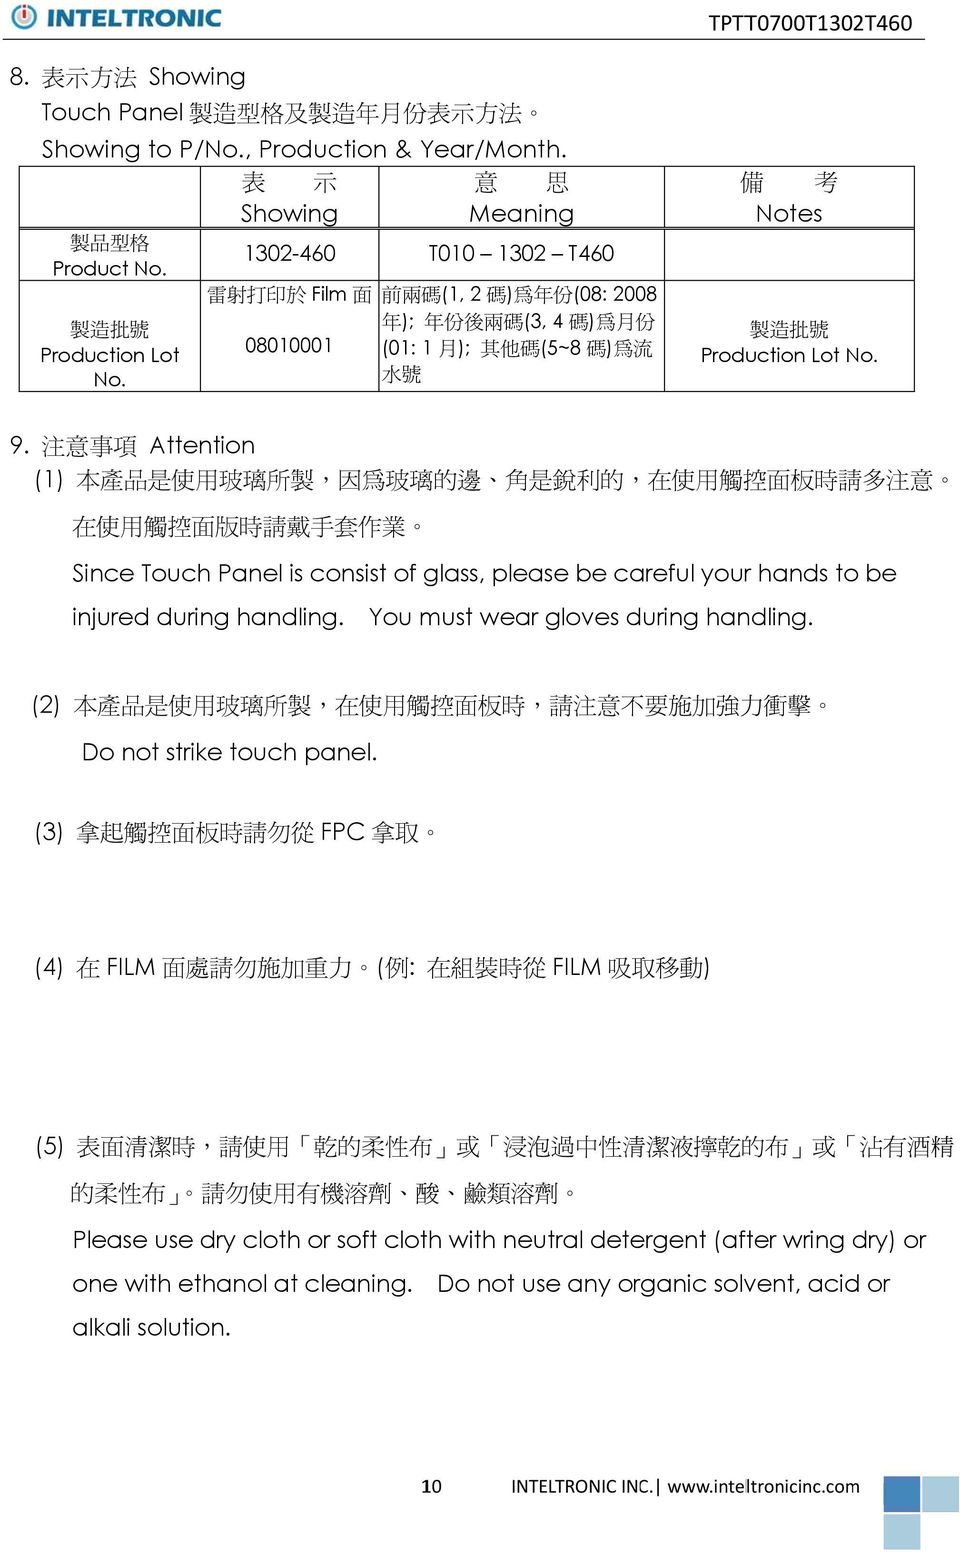 Attention (1) 利 Since Touch Panel is consist of glass, please be careful your hands to be injured during handling. You must wear gloves during handling.